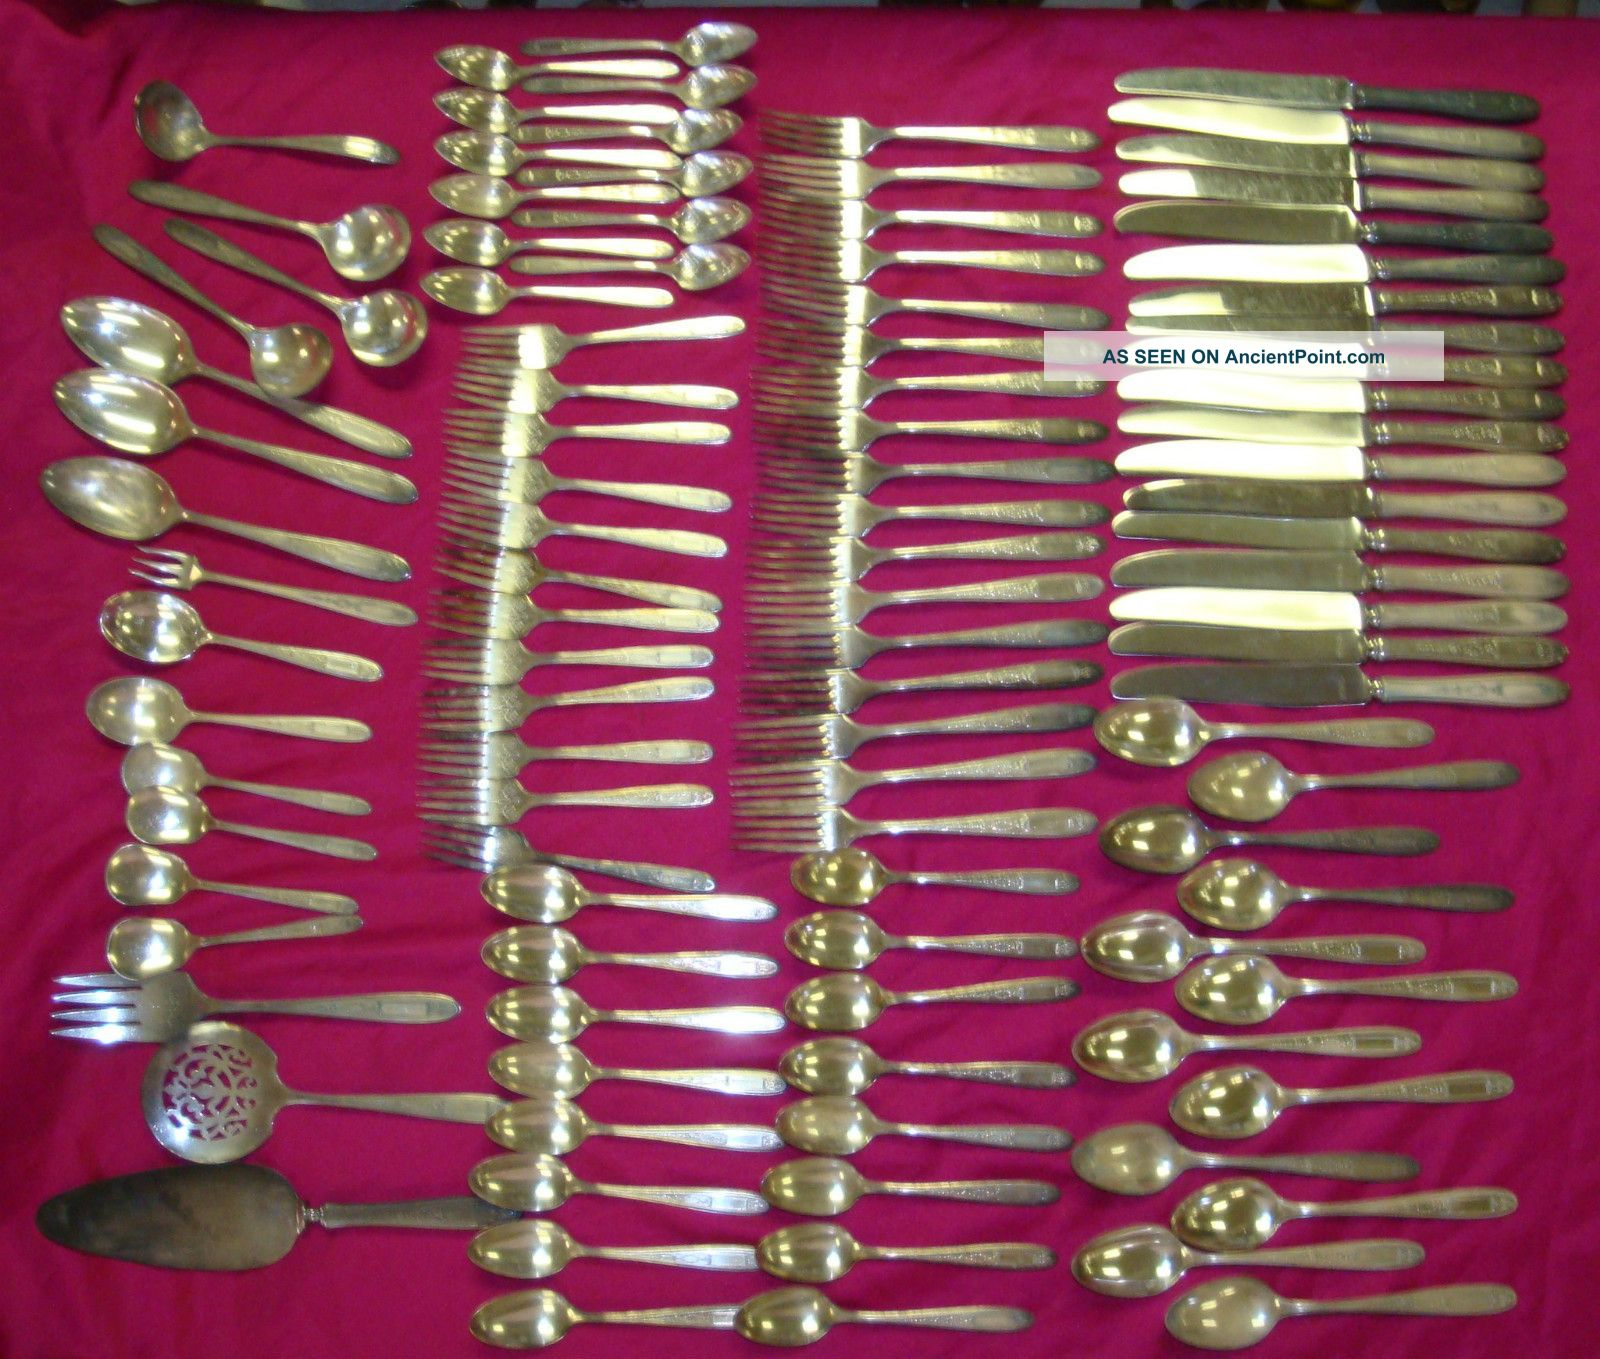 105 Piece Flatware Service For 12+ Extras Oneida Community Silver Plate Monogram Oneida/Wm. A. Rogers photo